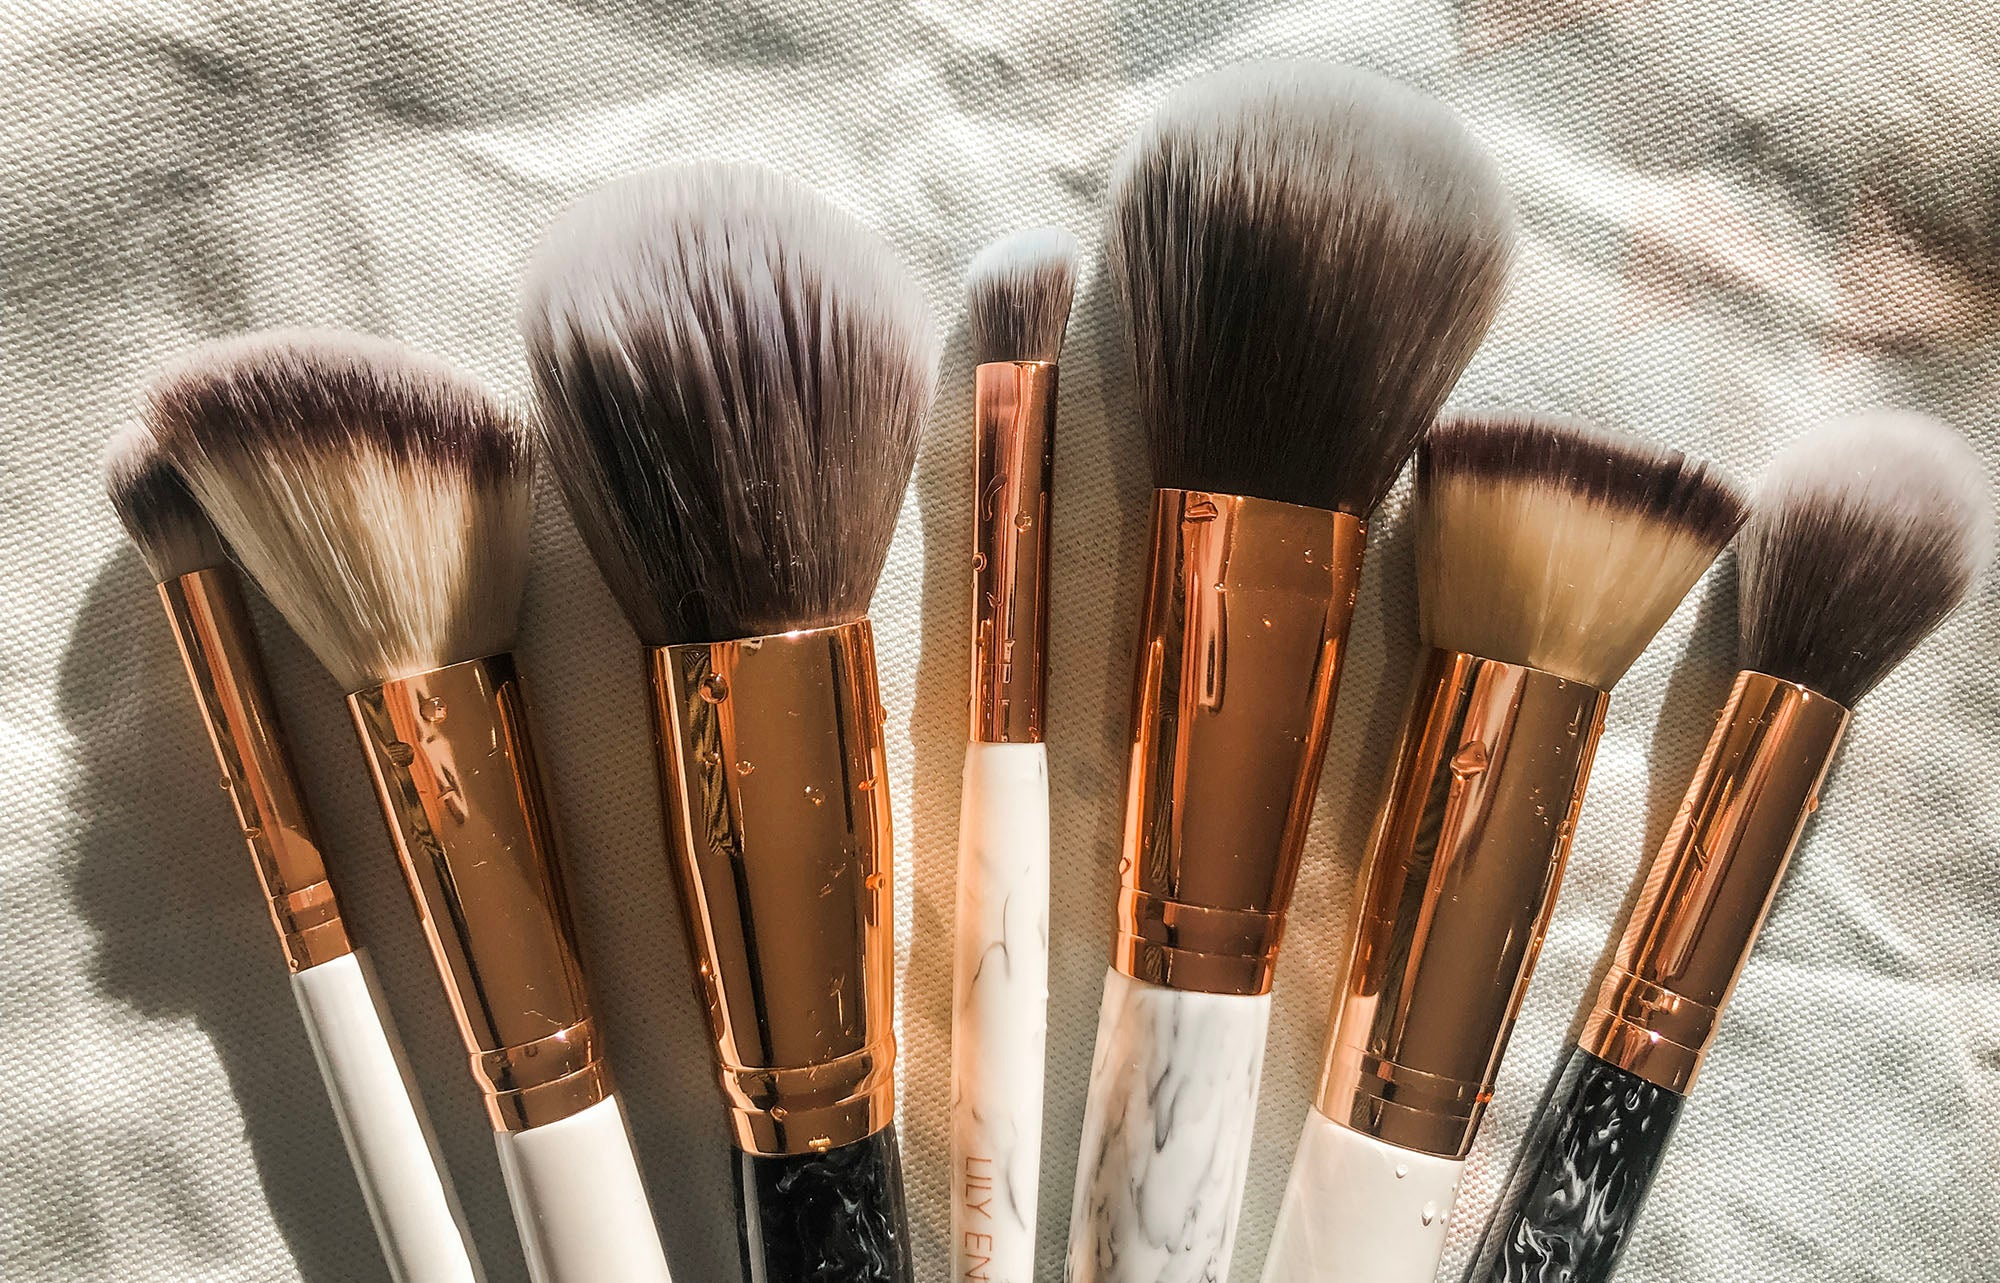 how to clean makeup brushes diy naturally